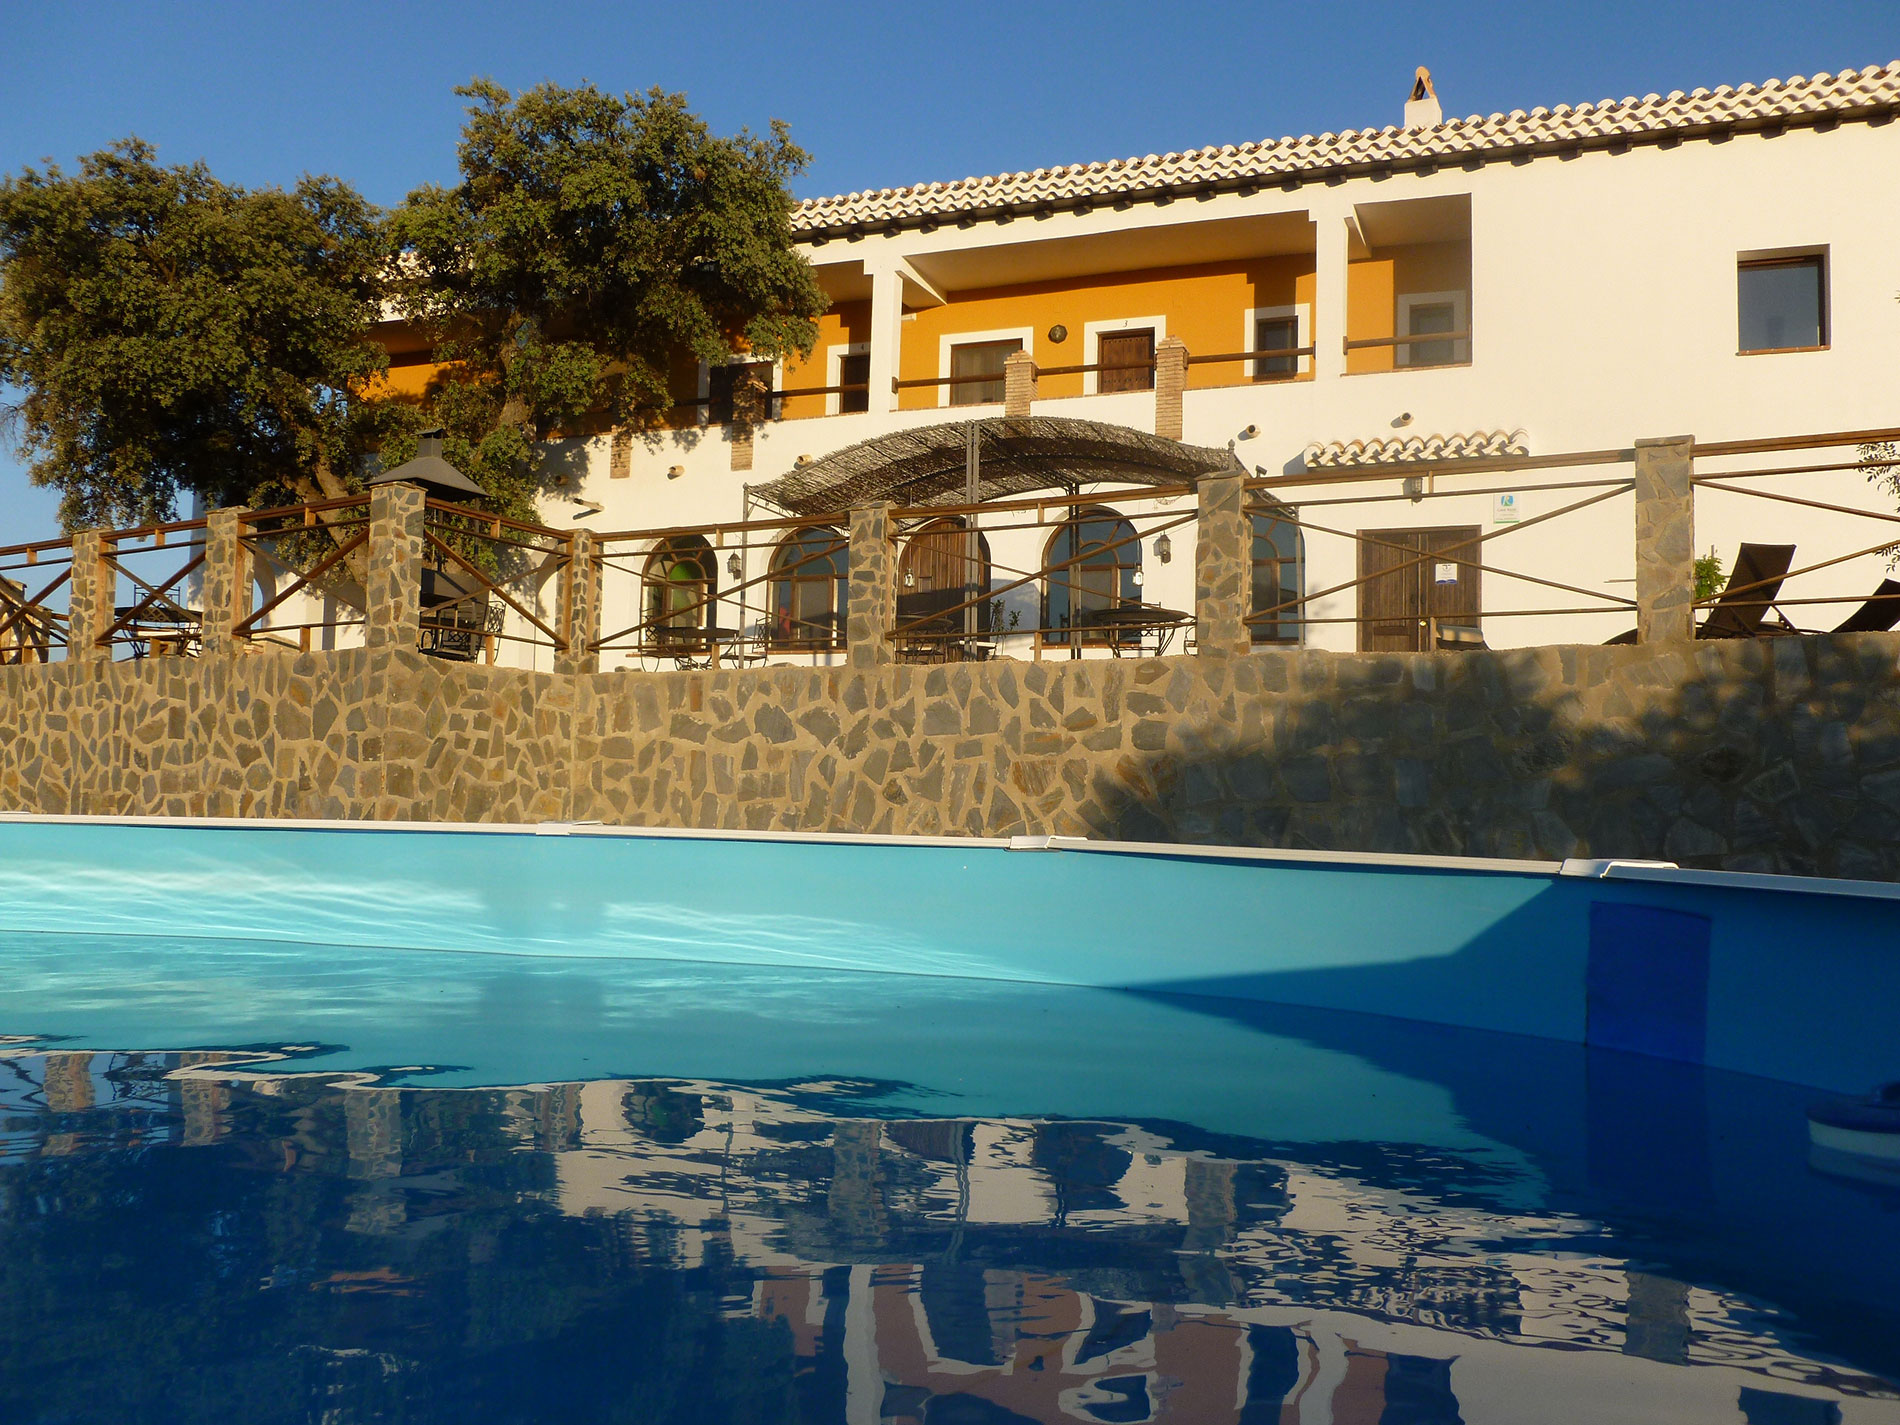 Pool, swimming pool,Eco Hotel family activity holiday andalusia spain, Responsible travel